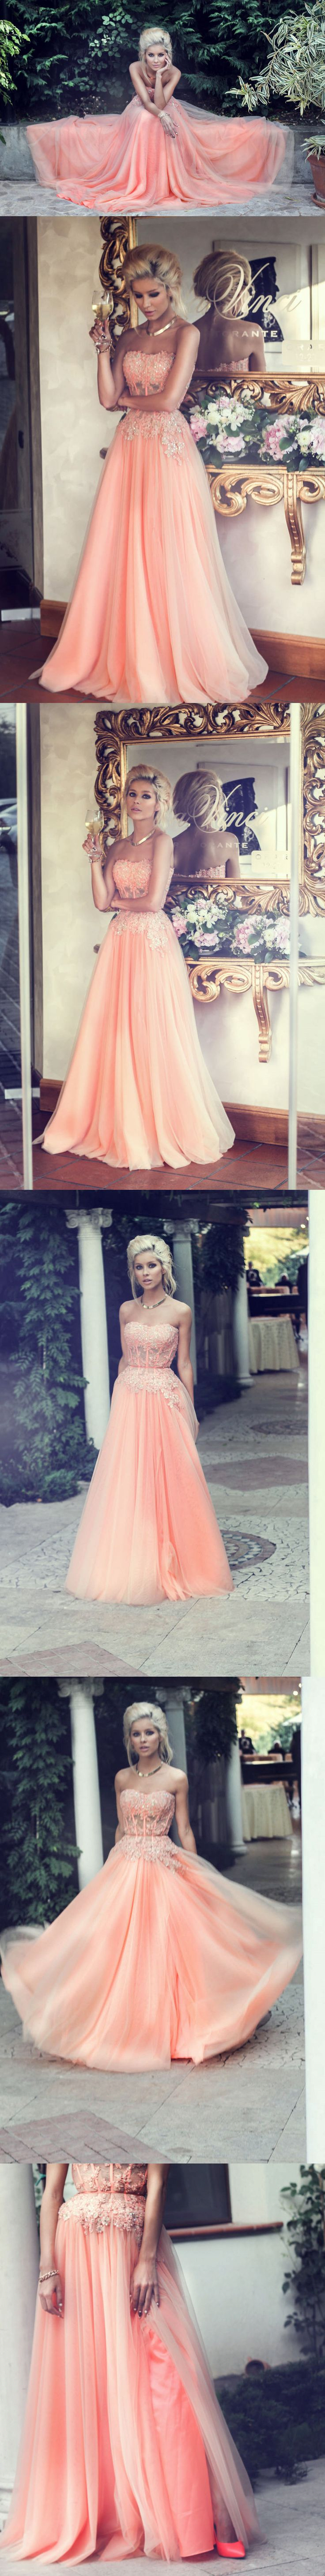 If I can get this dress in white..